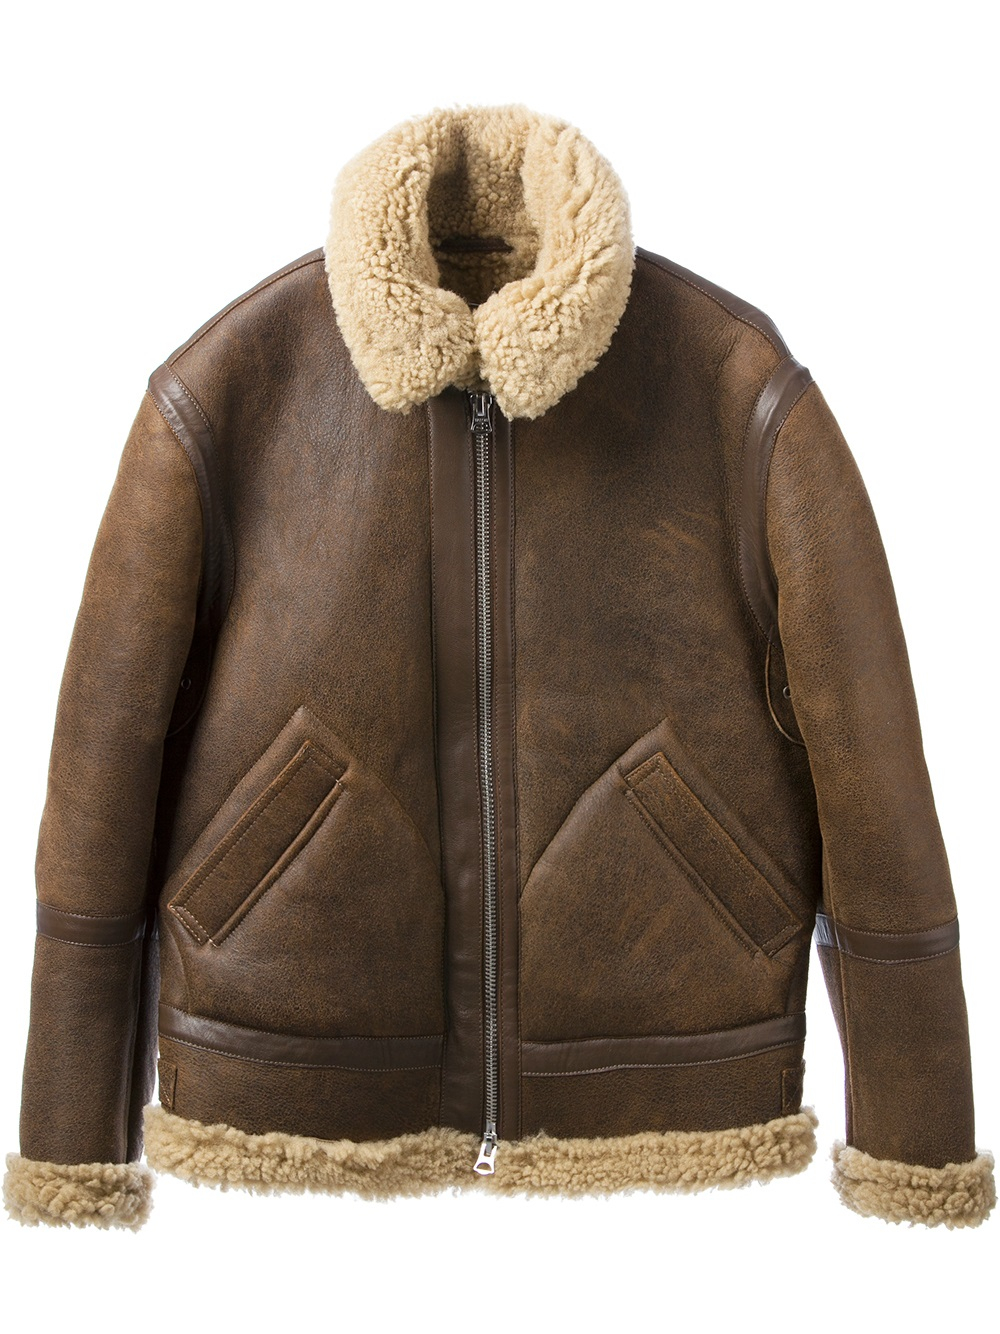 Lyst - Acne studios 'Ian Shearling' Jacket in Brown for Men